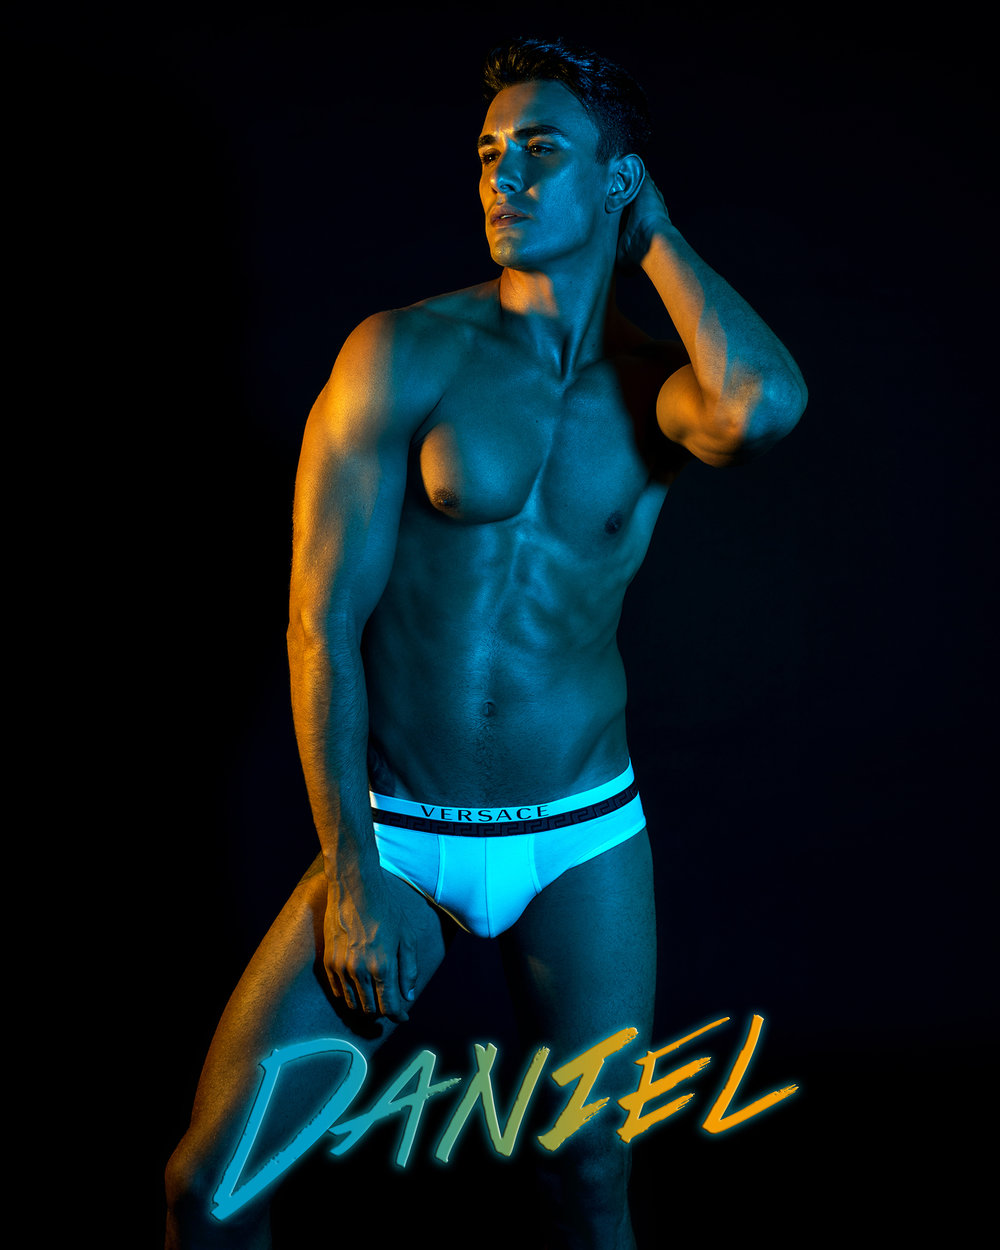 daniel-benjamin-studio-reprise-2017-final-by-jeremy-holden-36anet.jpg